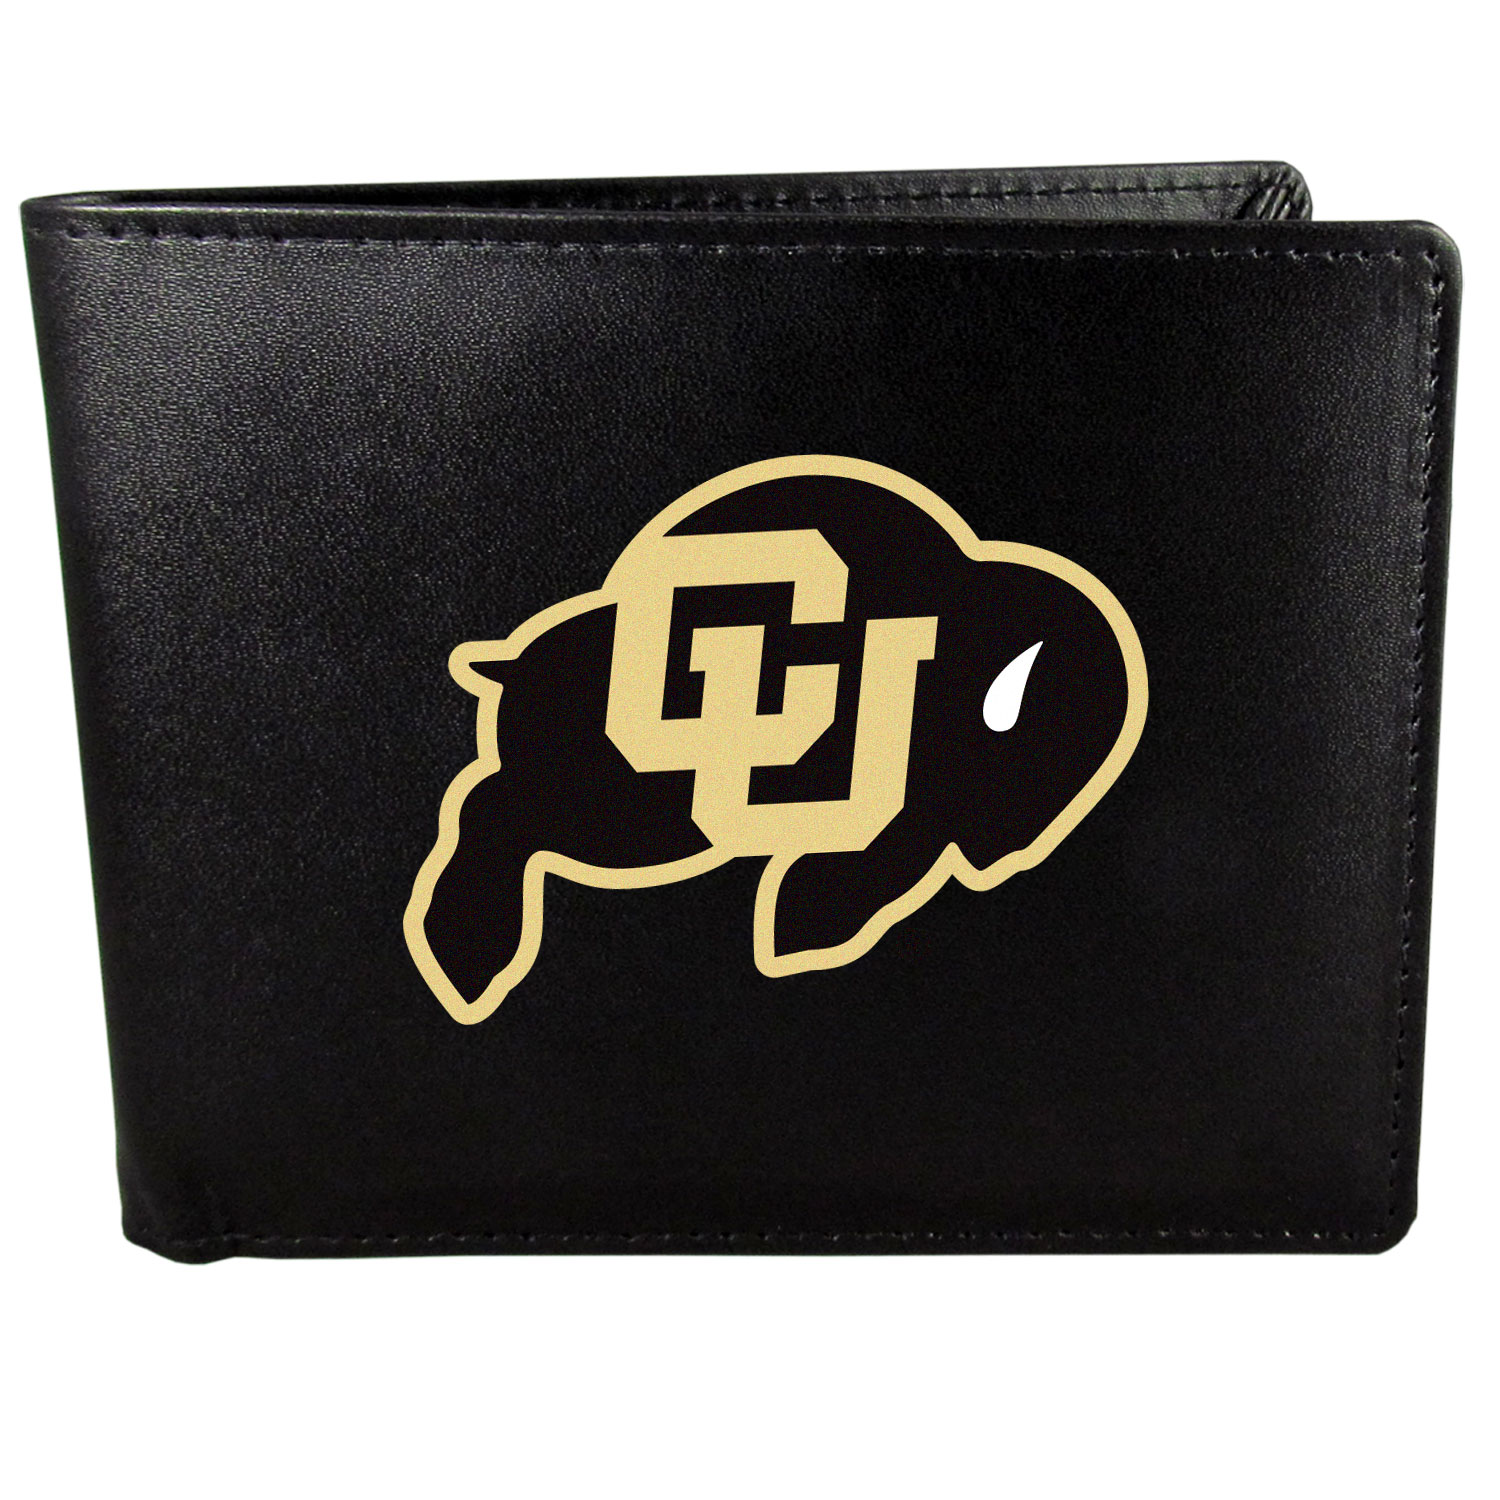 Colorado Buffaloes Bi-fold Wallet Large Logo - Sports fans do not have to sacrifice style with this classic bi-fold wallet that sports the Colorado Buffaloes?extra large logo. This men's fashion accessory has a leather grain look and expert craftmanship for a quality wallet at a great price. The wallet features inner credit card slots, windowed ID slot and a large billfold pocket. The front of the wallet features a printed team logo.